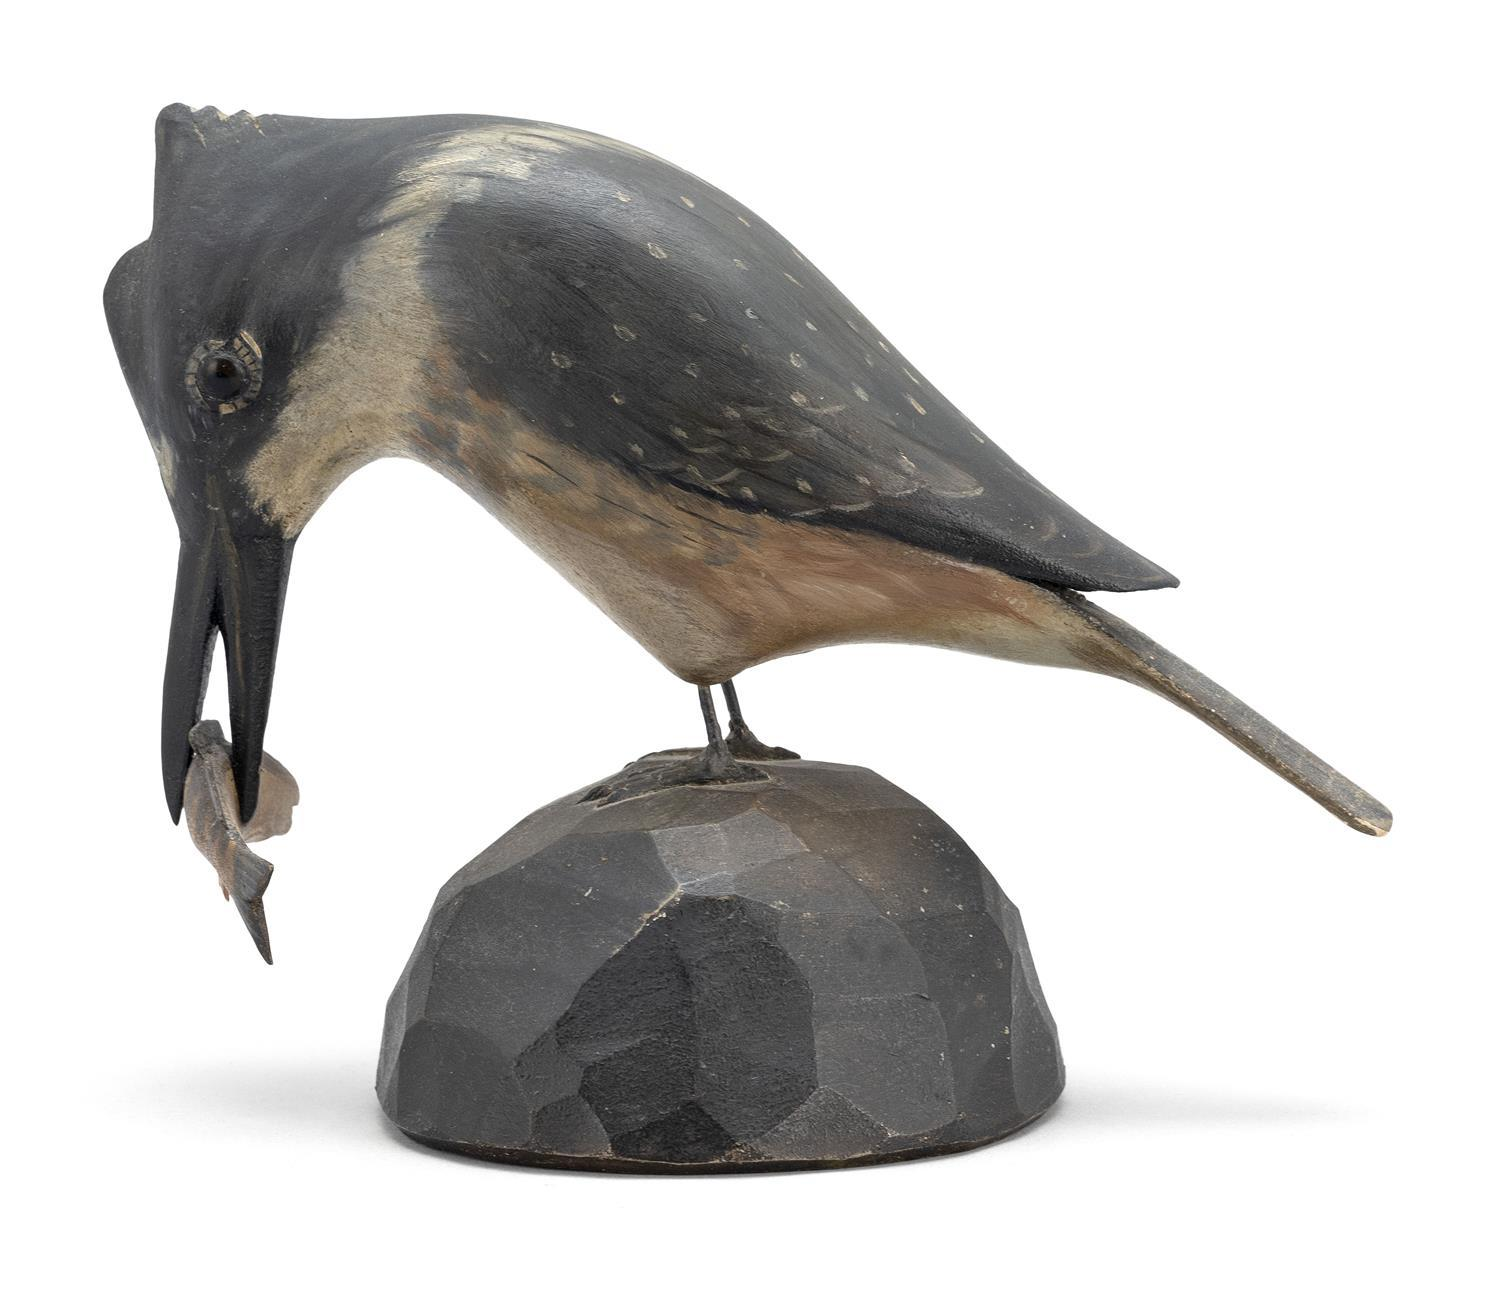 "A. ELMER CROWELL LIFE-SIZE KINGFISHER WITH A FISH IN ITS BILL Mounted on a chip-carved base. Rectangular brand. Height 5.75"". Length..."